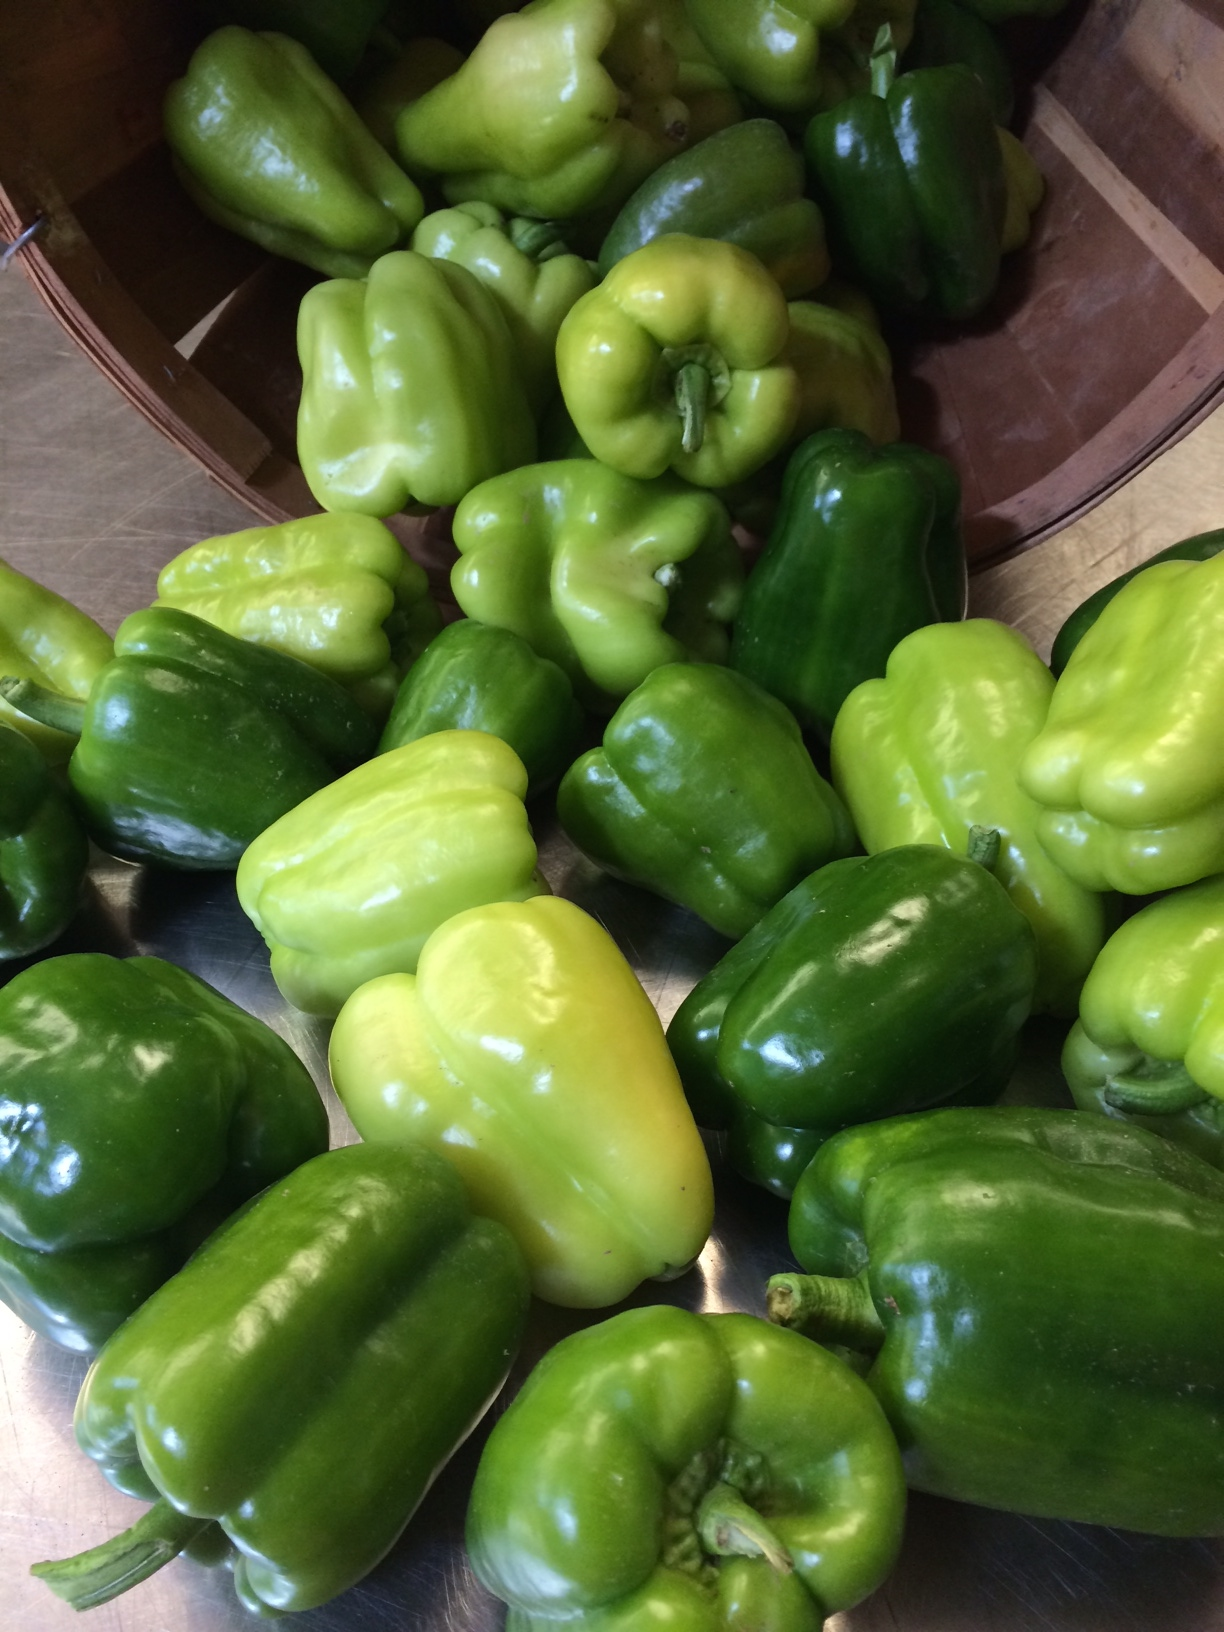 Green peppers at their peak